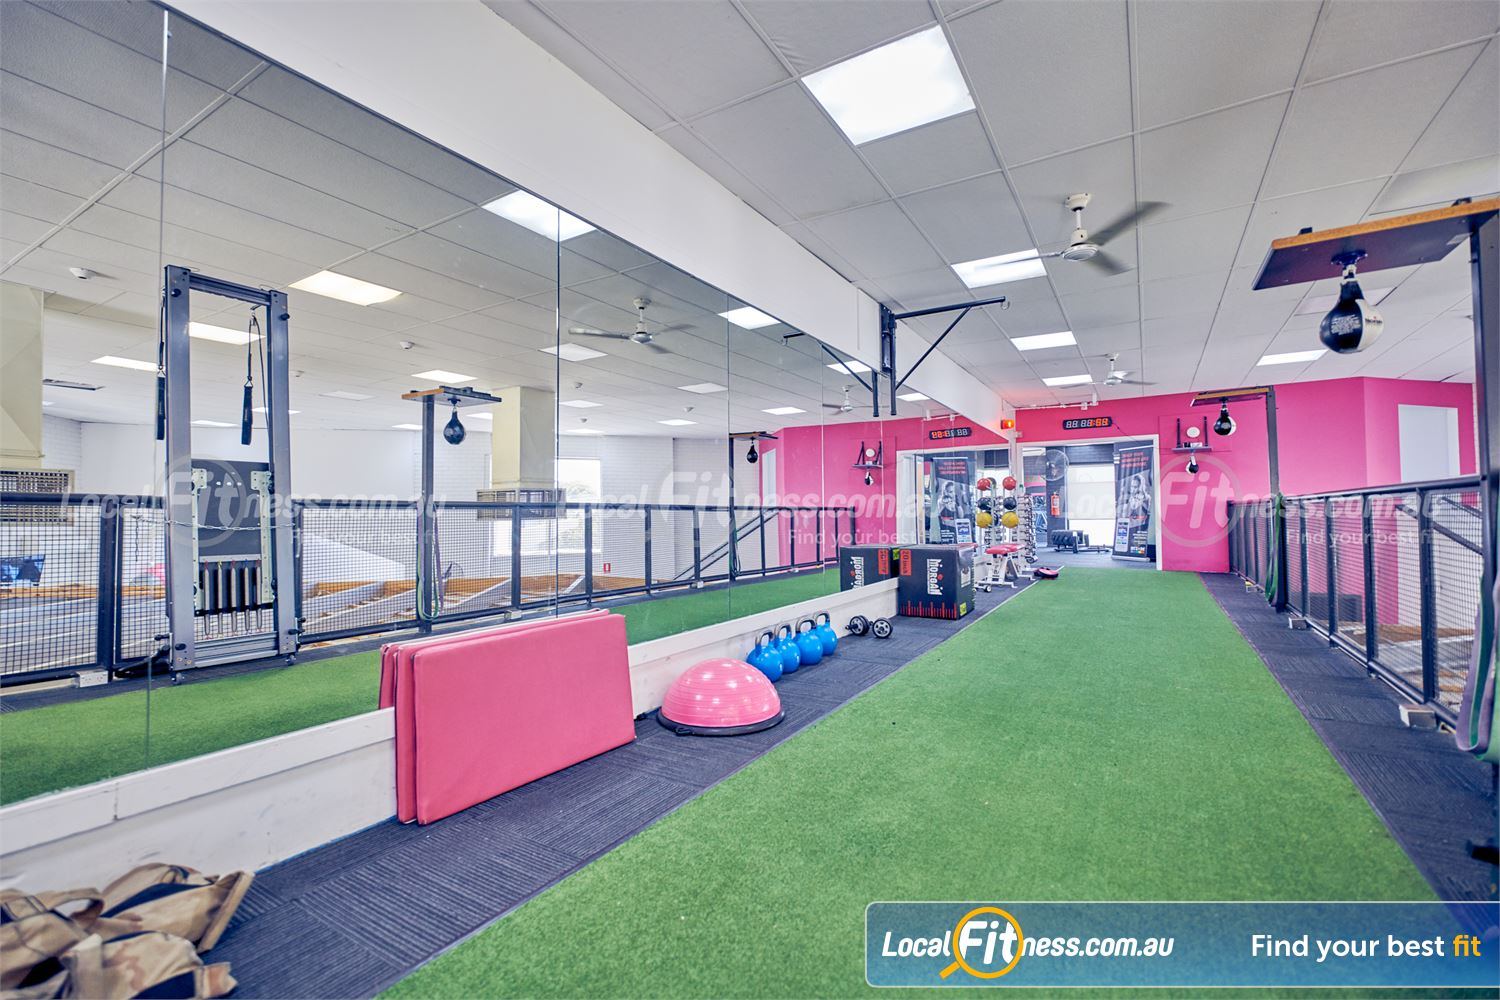 Fernwood Fitness Near Jacana The dedicated functional training area with indoor sled track.